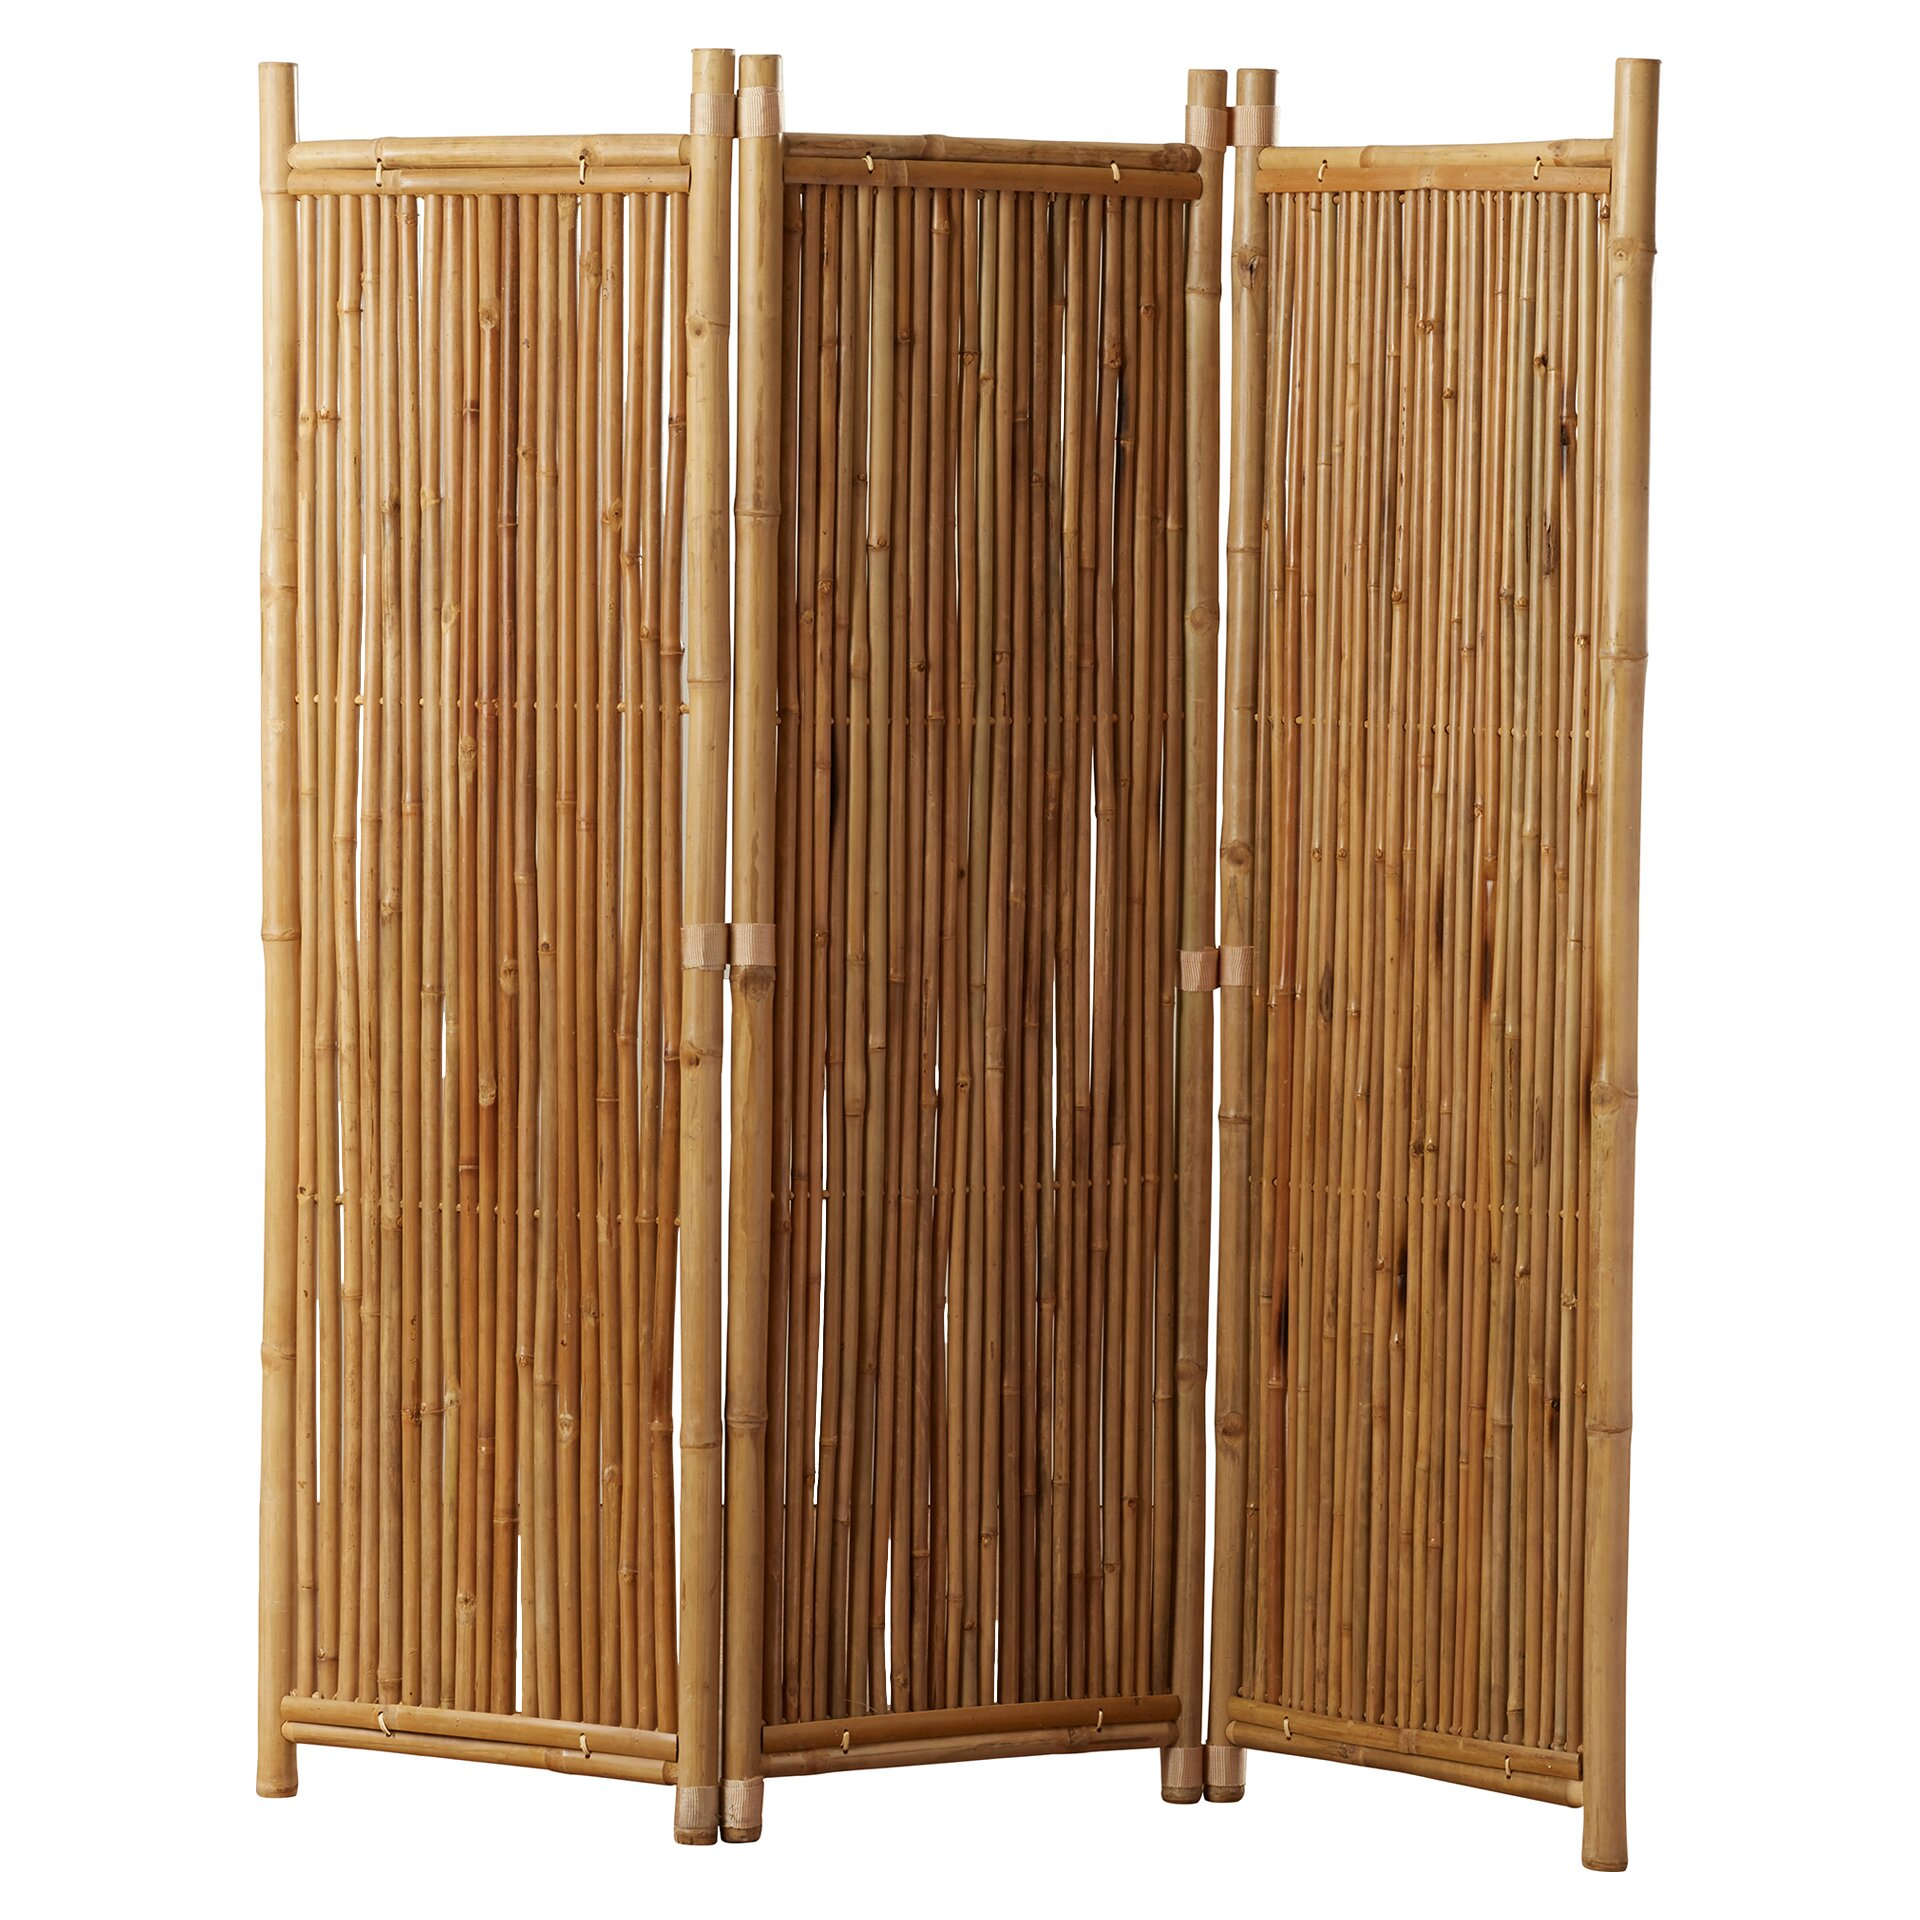 Bay isle home porter 63 x 60 3 panel bamboo room divider for Porte 60 x 30